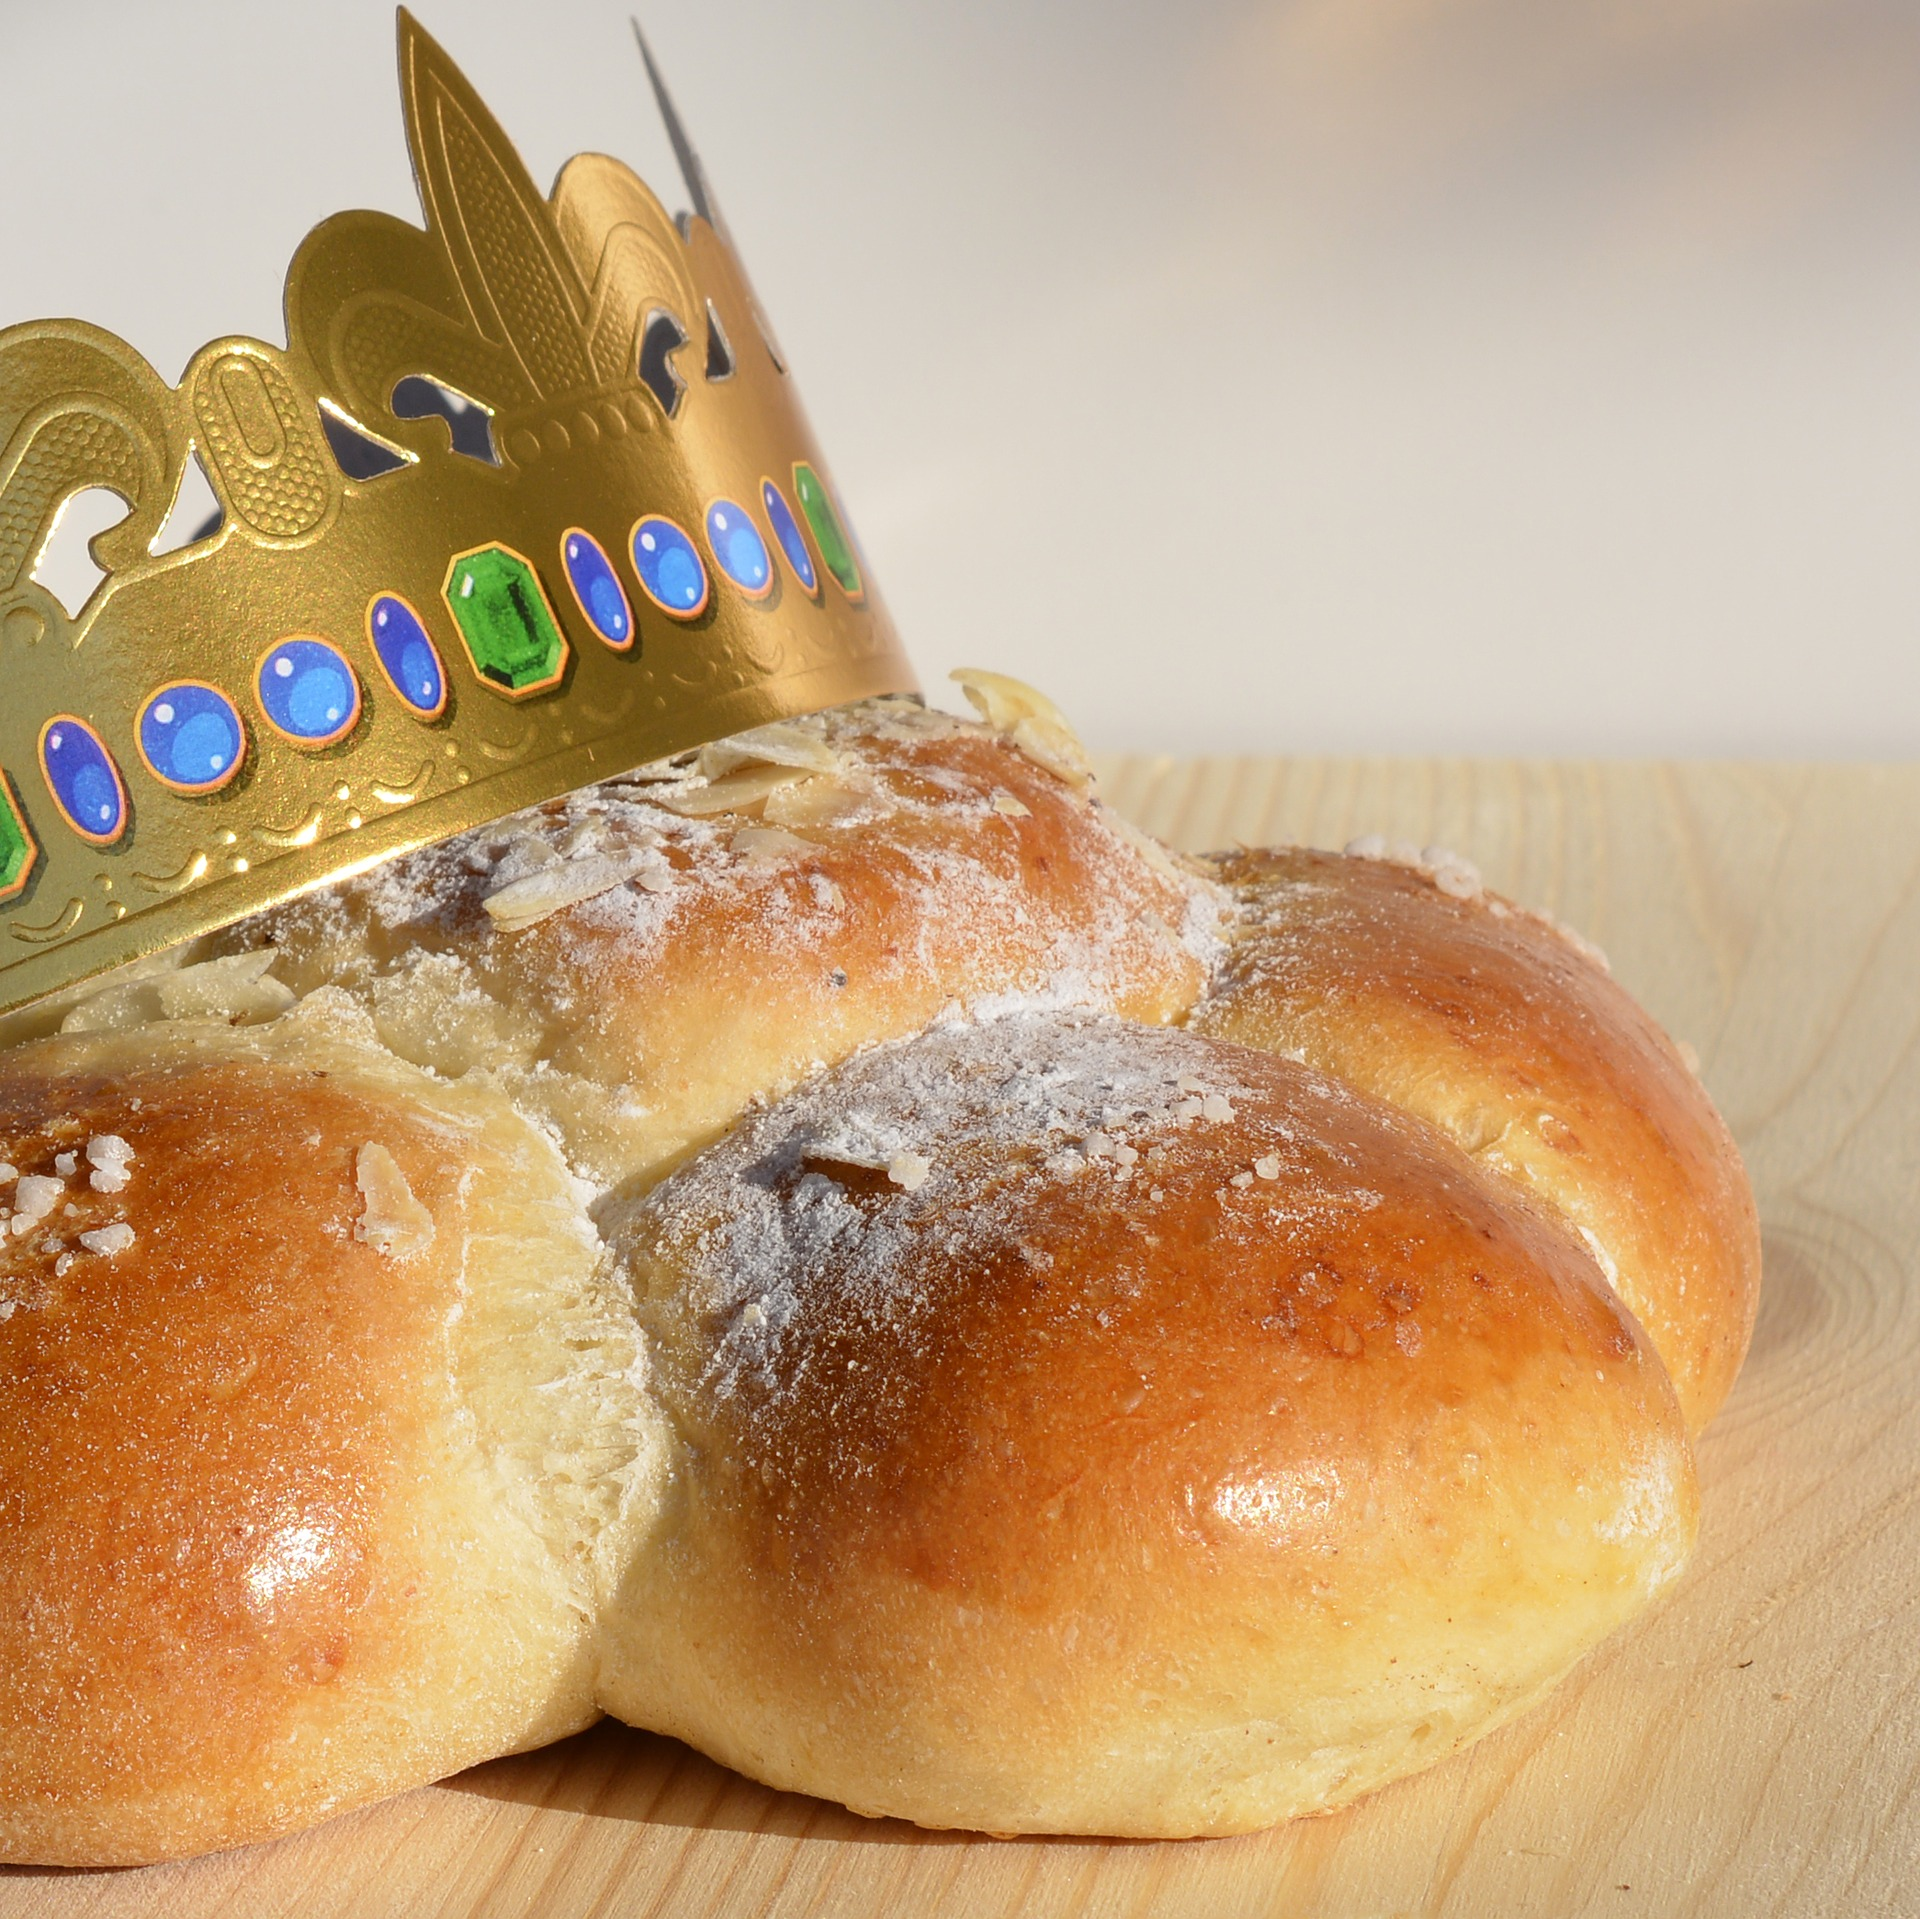 Glazed pastry buns compose a cake, dusted with powdered sugar, and topped with a golden paper crown.